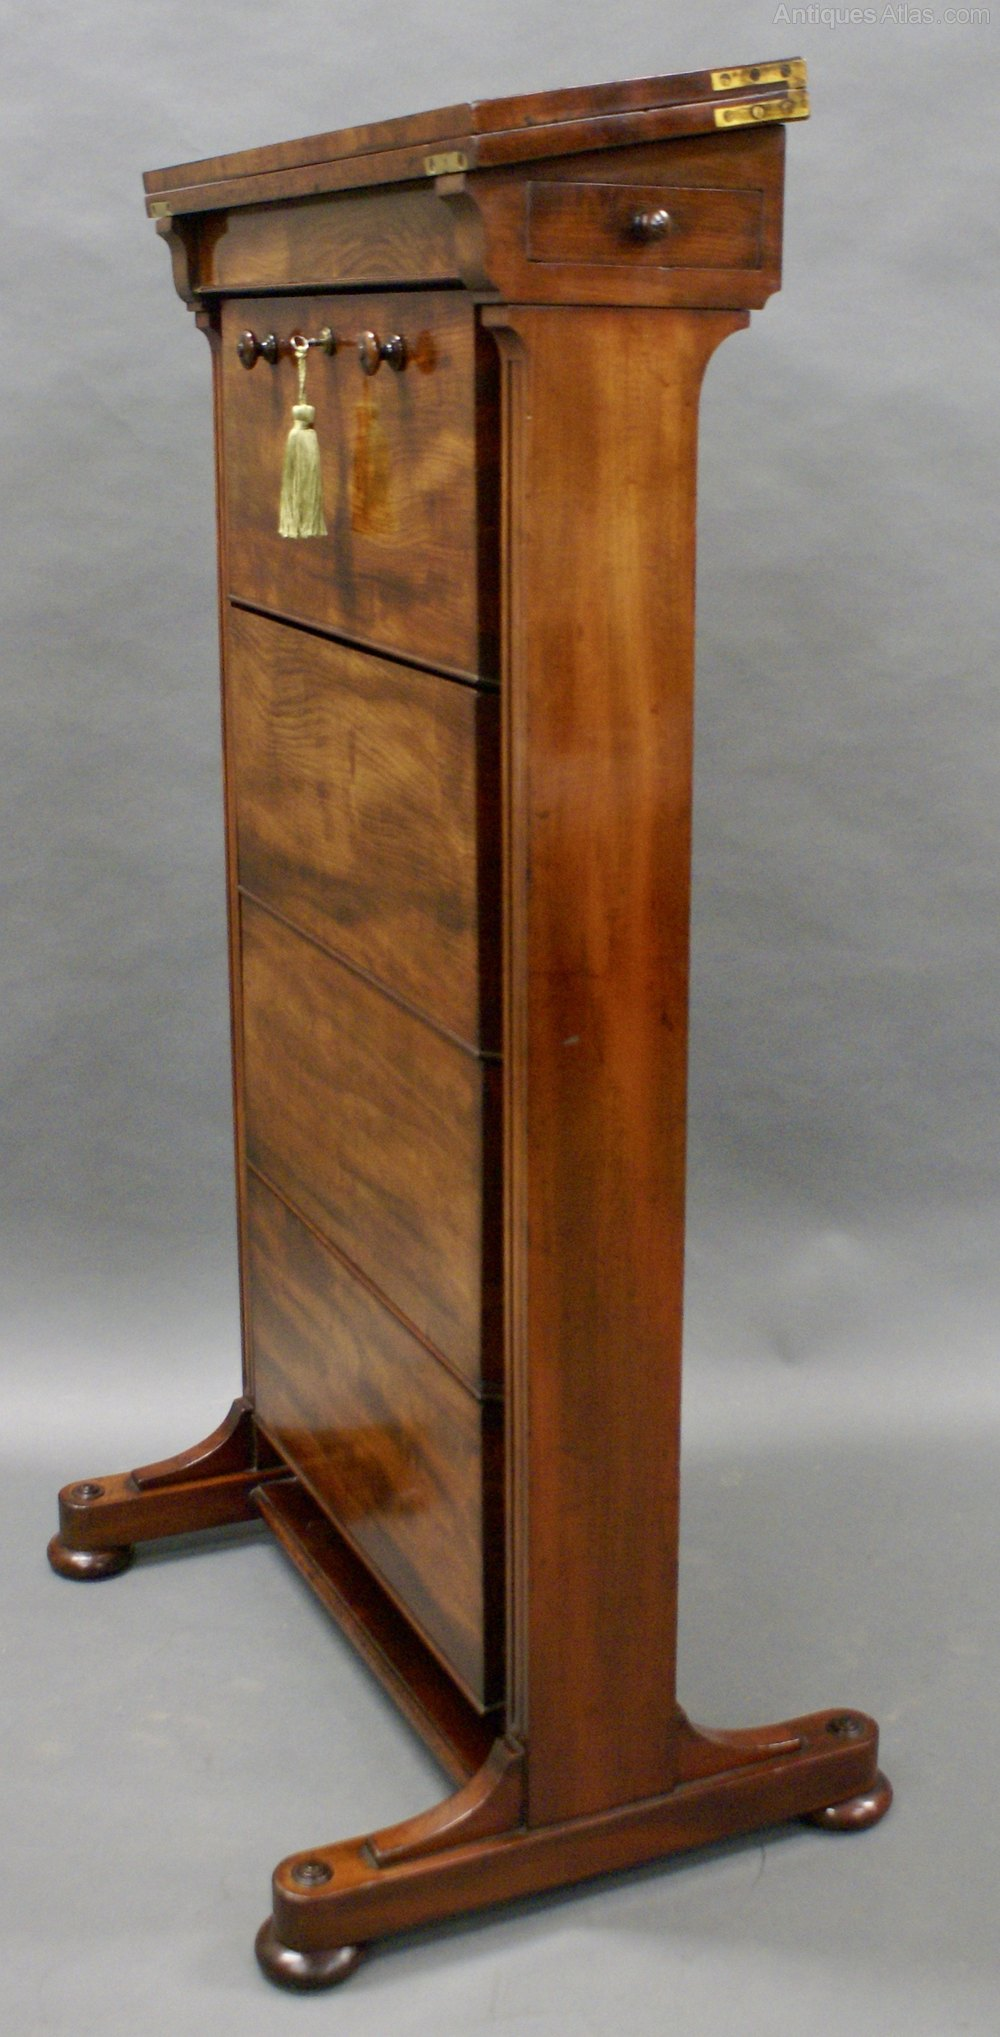 A william iv mahogany maitre d stand antiques atlas for What is a maitre d